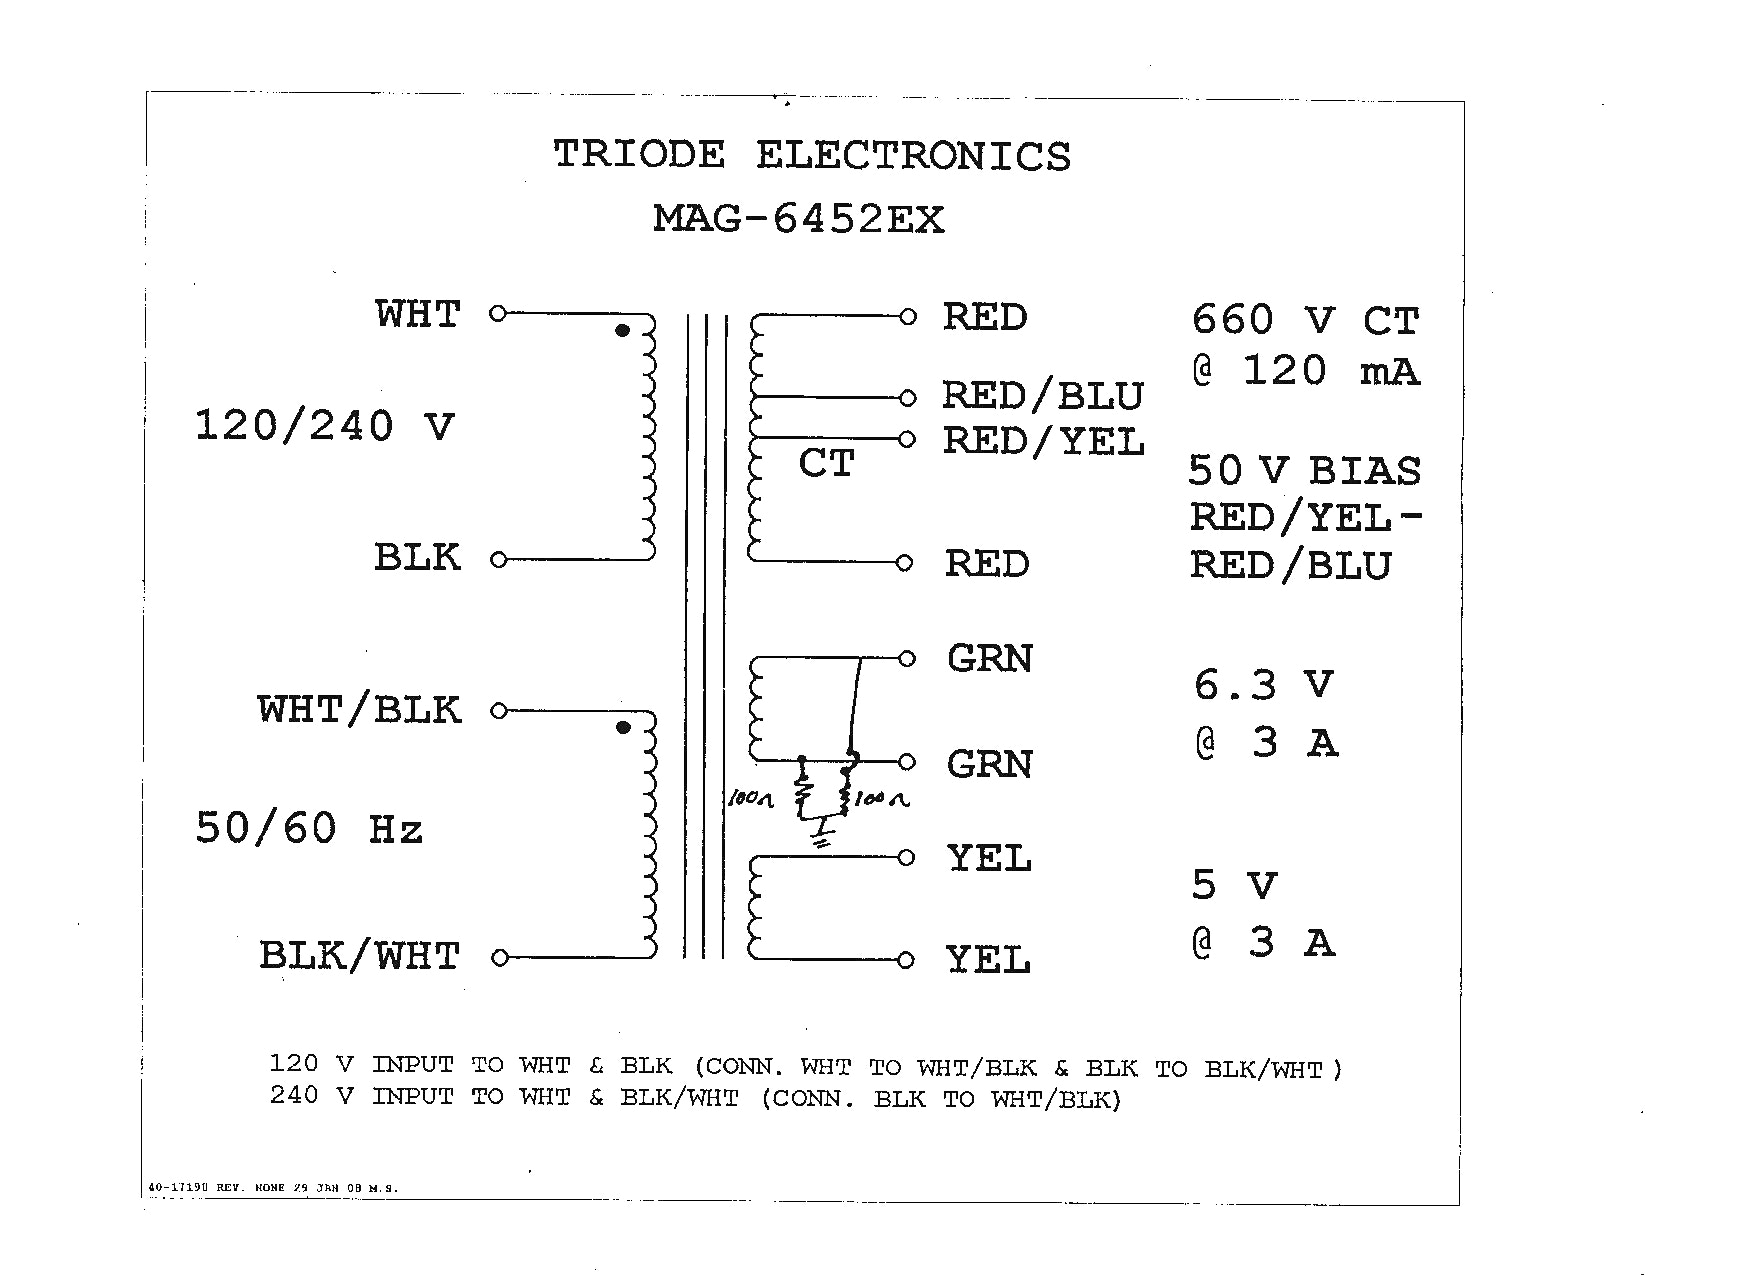 acme buck boost transformer wiring diagram Download-buck and boost transformer wiring diagram Collection Acme Transformers Wiring Diagrams 11 t 15-o